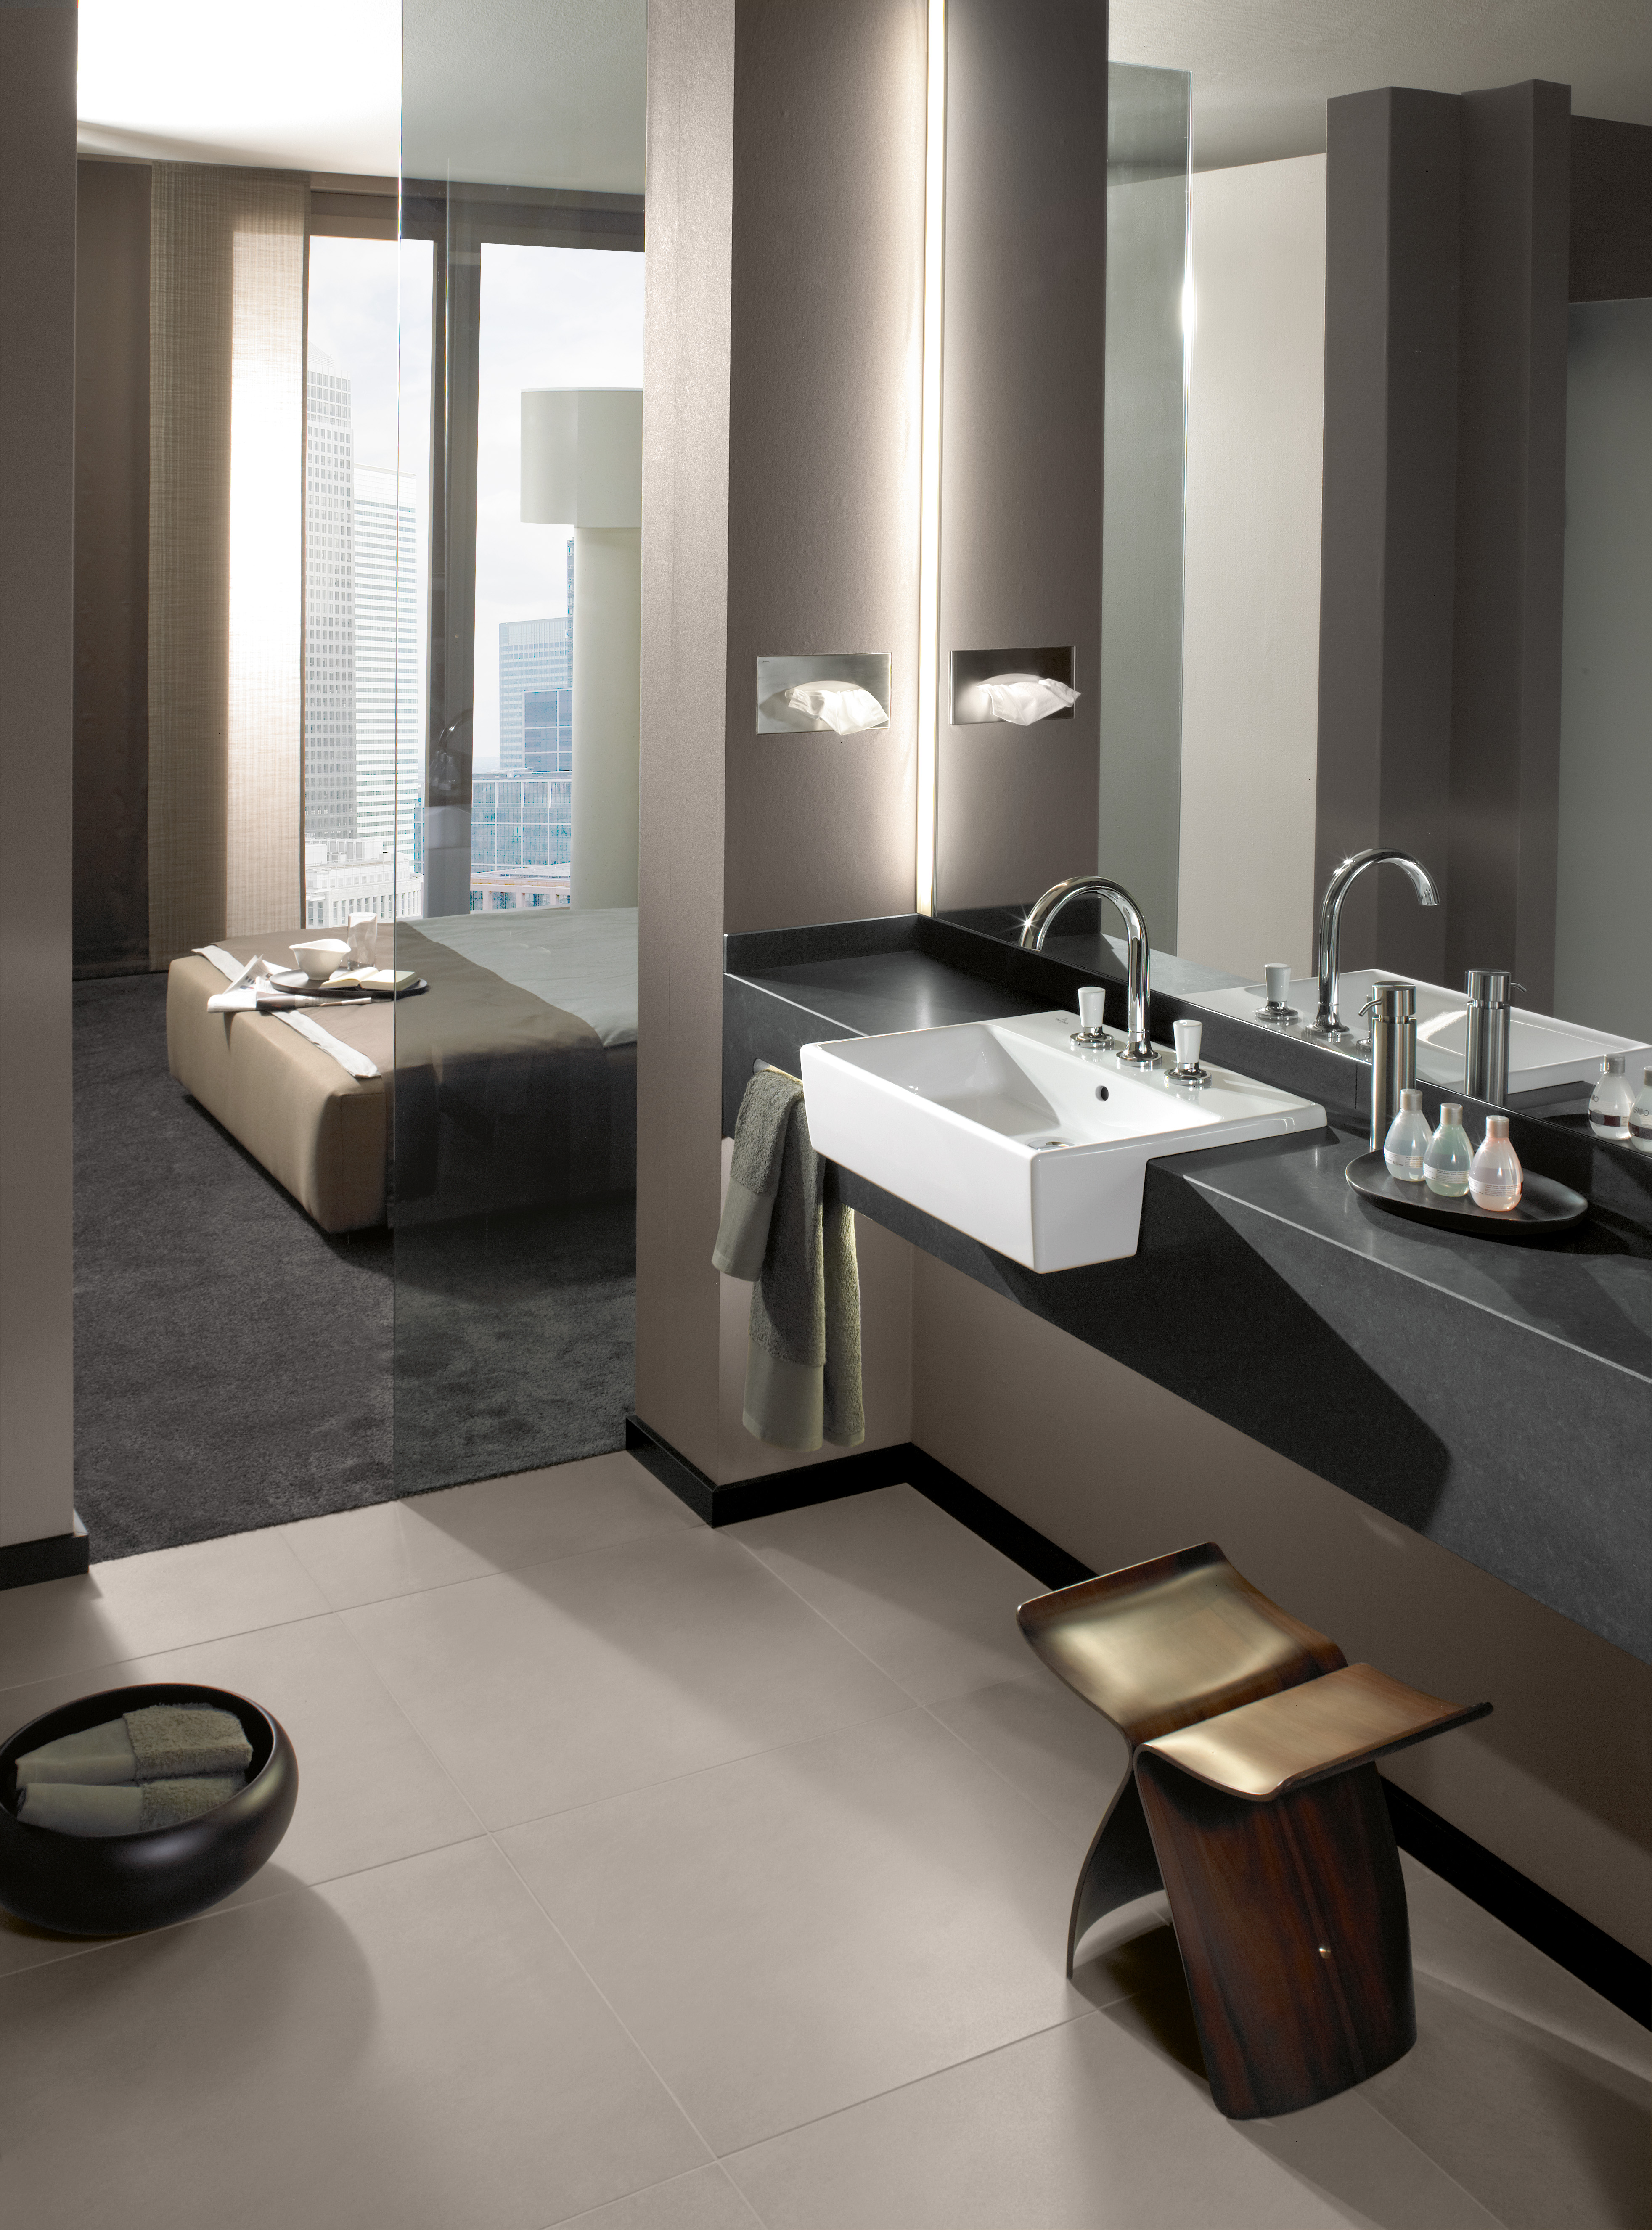 Memento Washbasin, Semi-recessed washbasin, Washbasins, Semi-recessed washbasins